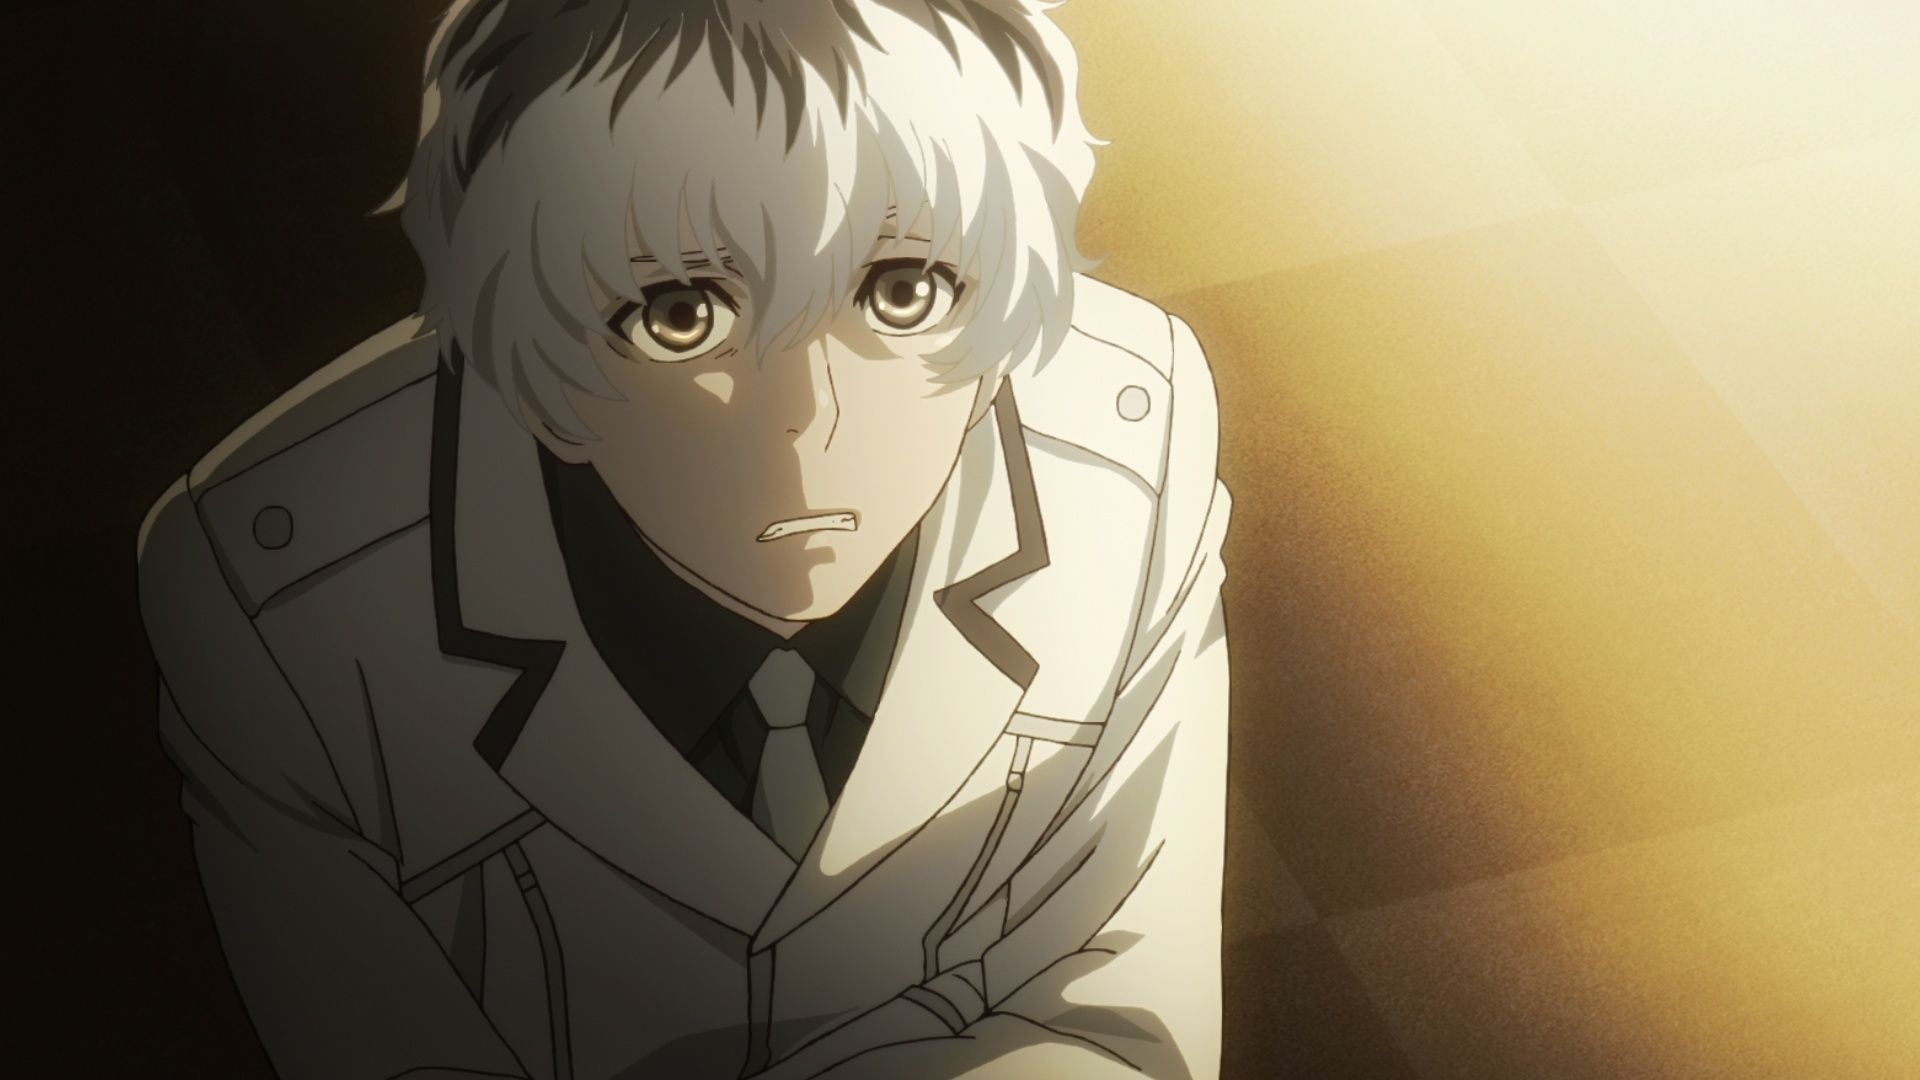 Tokyo Ghoul Season 3 Episode 1 (With images) Tokyo ghoul